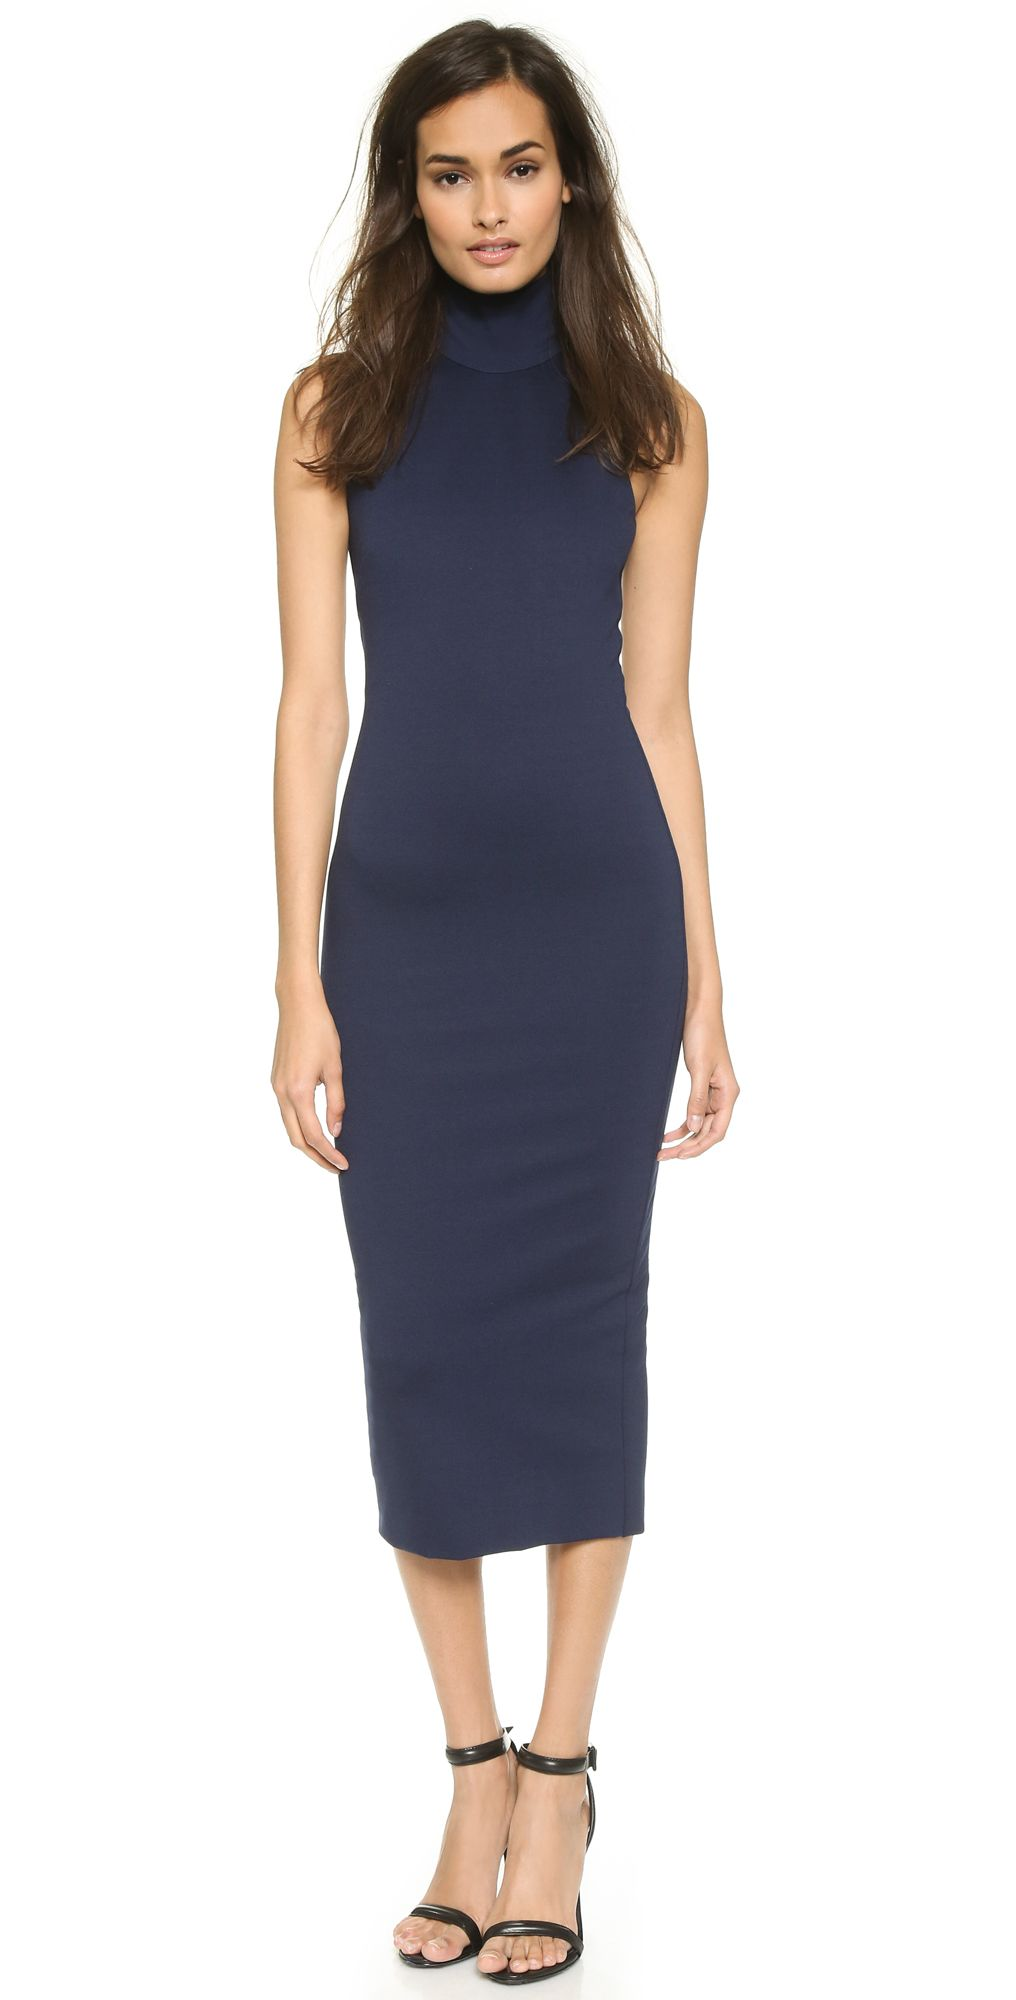 Enza Costa Ribbed Cap Sleeve Dress Shopbop The Style Event Up To 25 Off On Must Have Pieces From Top Designers Lace Up Bodycon Dress Plus Size Bodycon Dresses Knit Tank Dress [ 2000 x 1016 Pixel ]